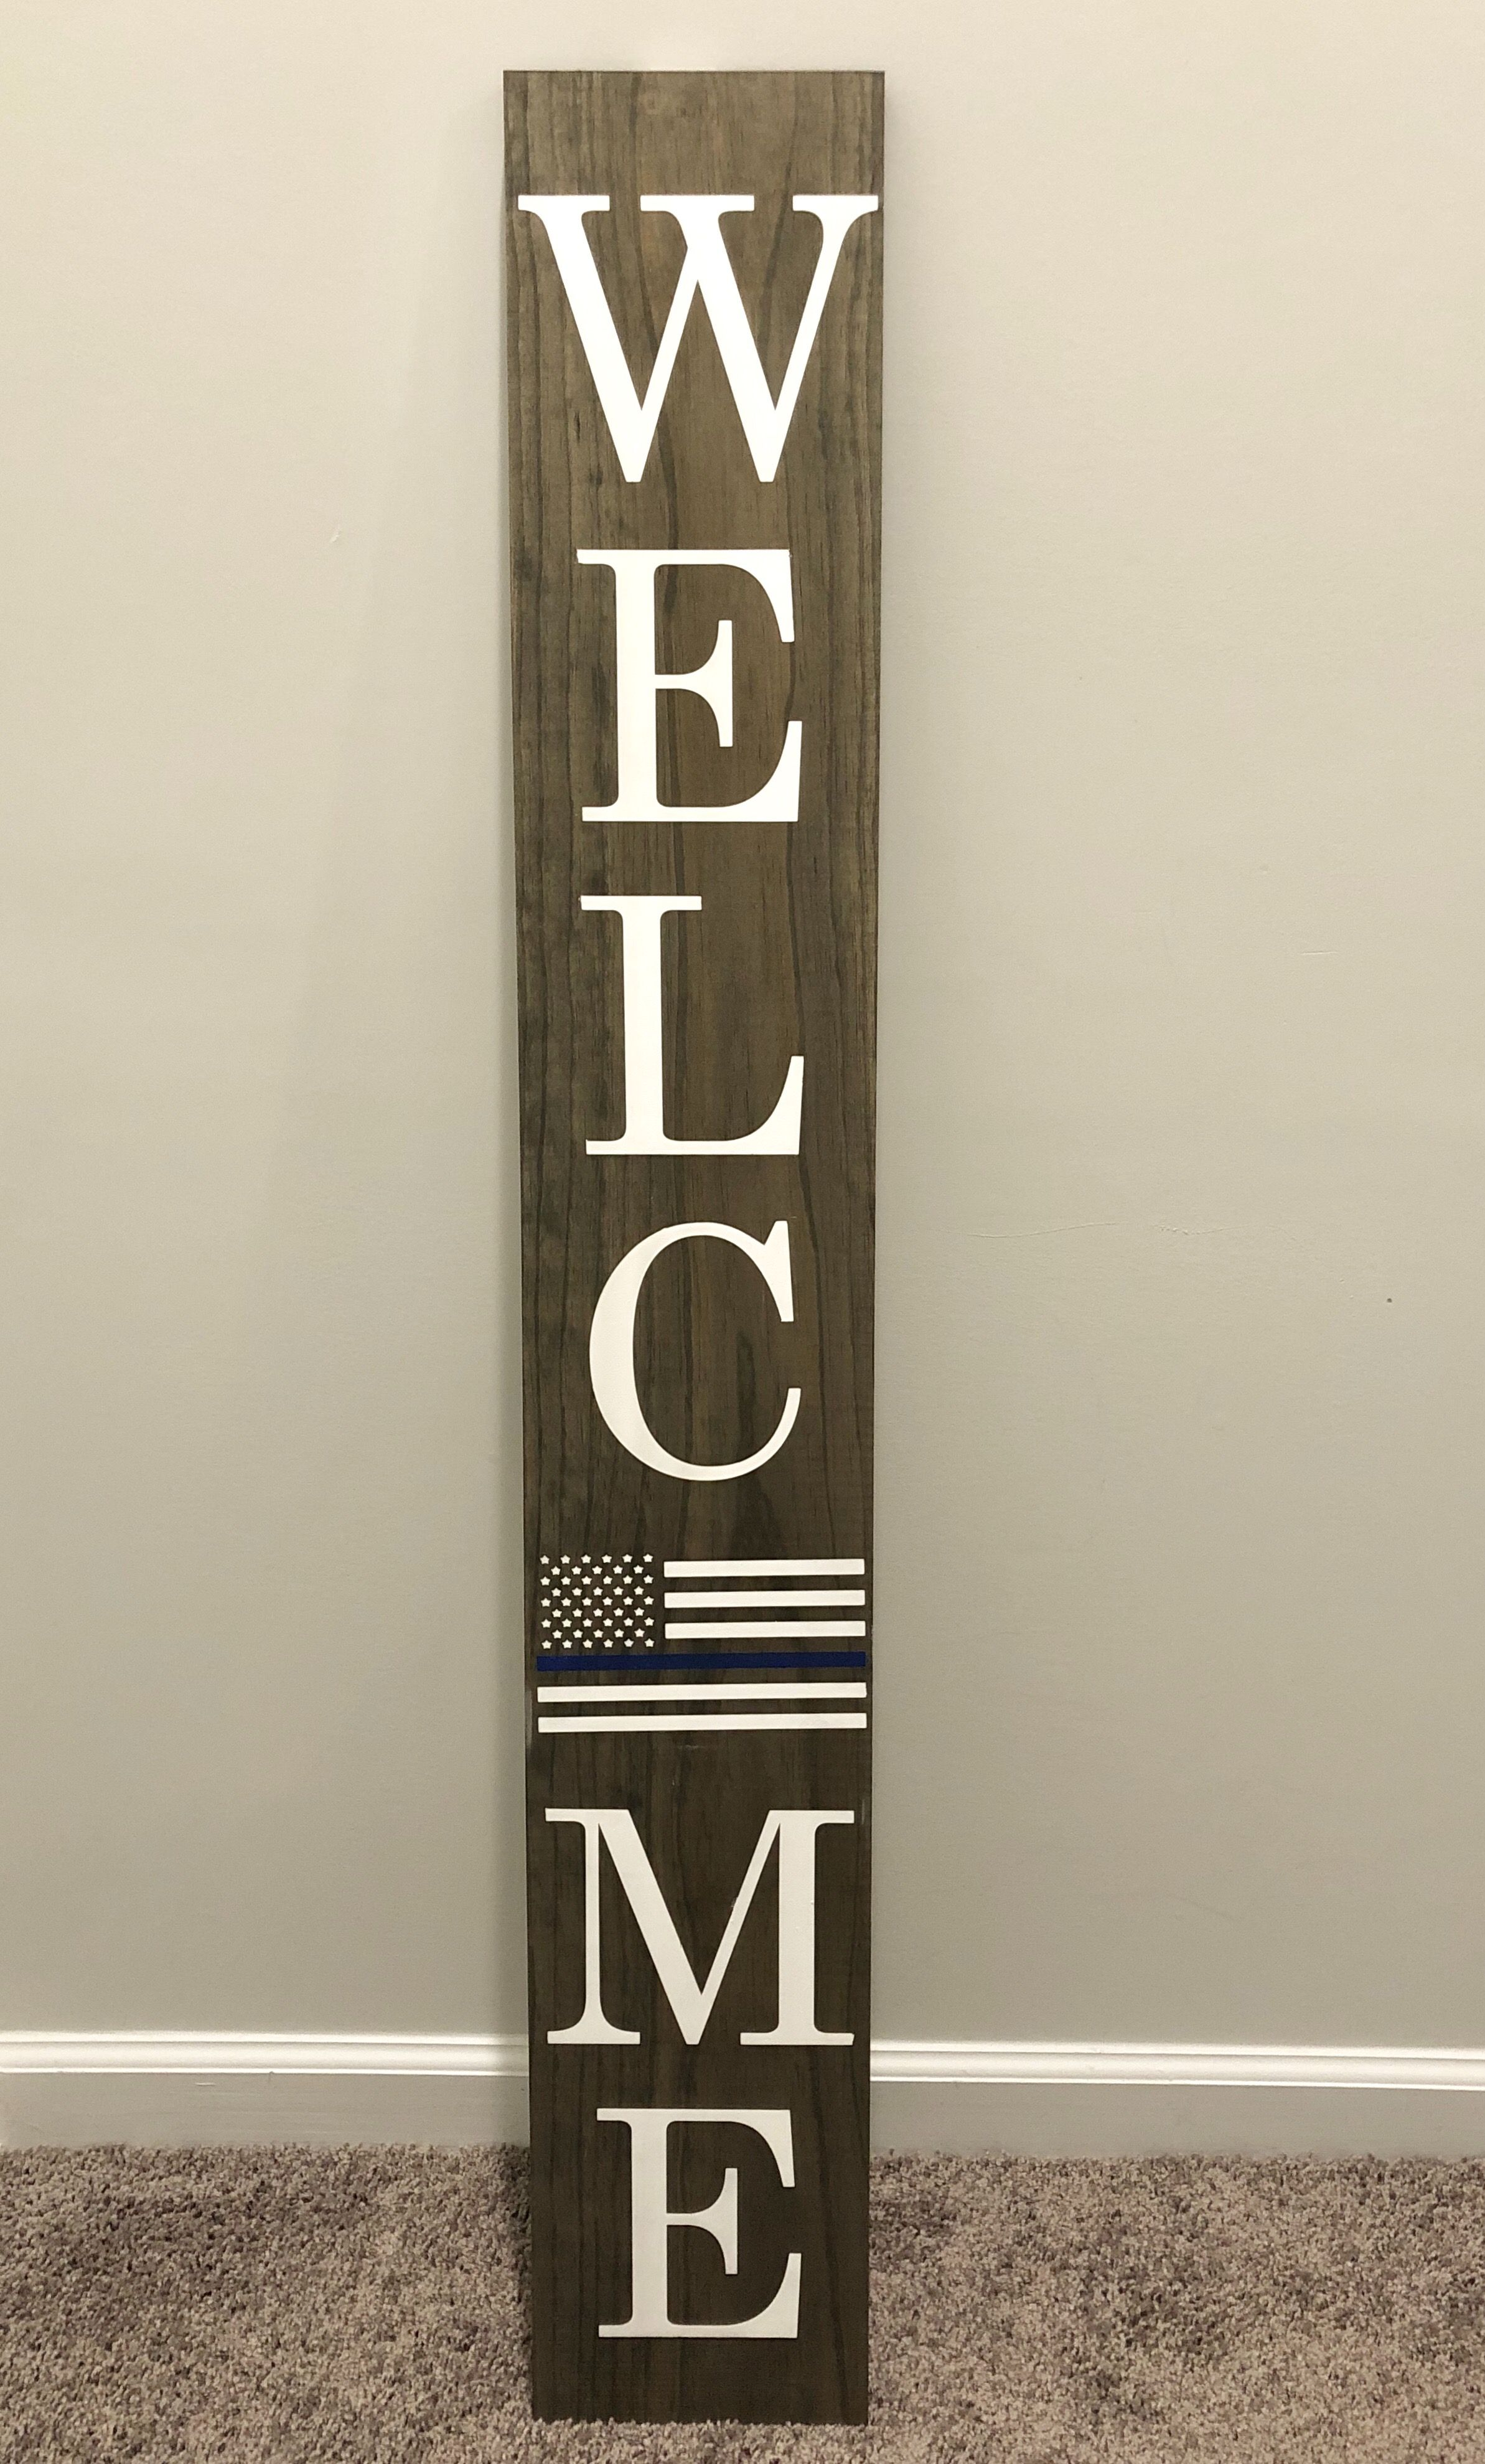 Handmade porch welcome sign. Grey stained wood with white stenciled letters. Currently selling for $50 (does not include shipping). Check out my Facebook page to place your order!   #handmadecrafts #cricutmade #farmhousesign #rustichomedecor #rusticdecor #farmhousedecor #doorhanger #doorsigns #frontdoordecor #frontdoorgoals #homedecoration #homesweethome #homedecorating #cricutmaker #farmhousedecor #farmhousestyle #farmhouse #porchsigns #welcomesign #porchdecor #porchdecorating